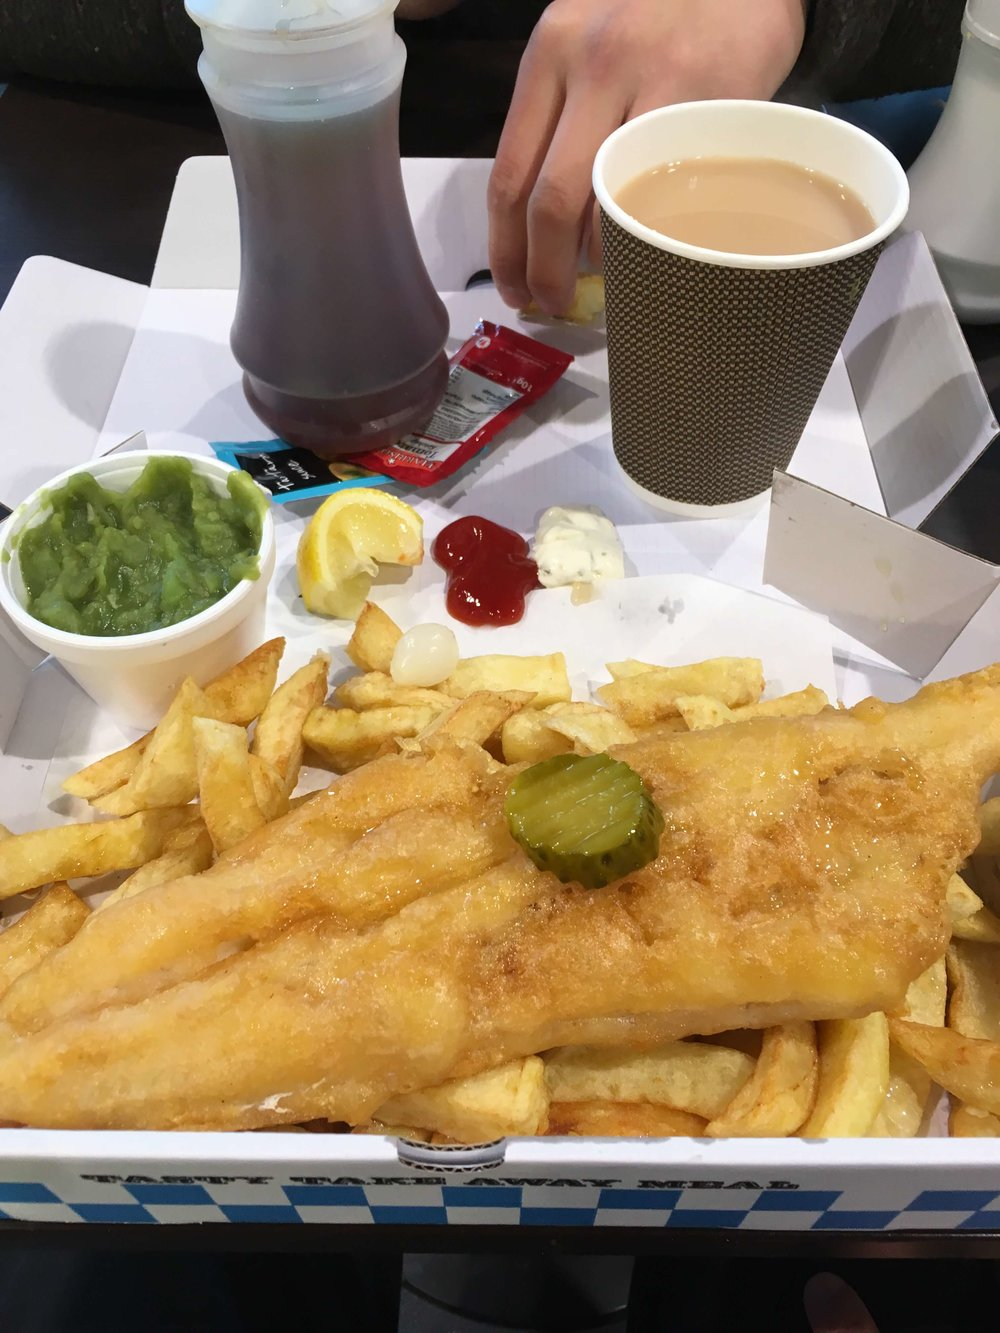 Scousy Fish'n'Chips with mushy peas next to the Tate Liverpool.